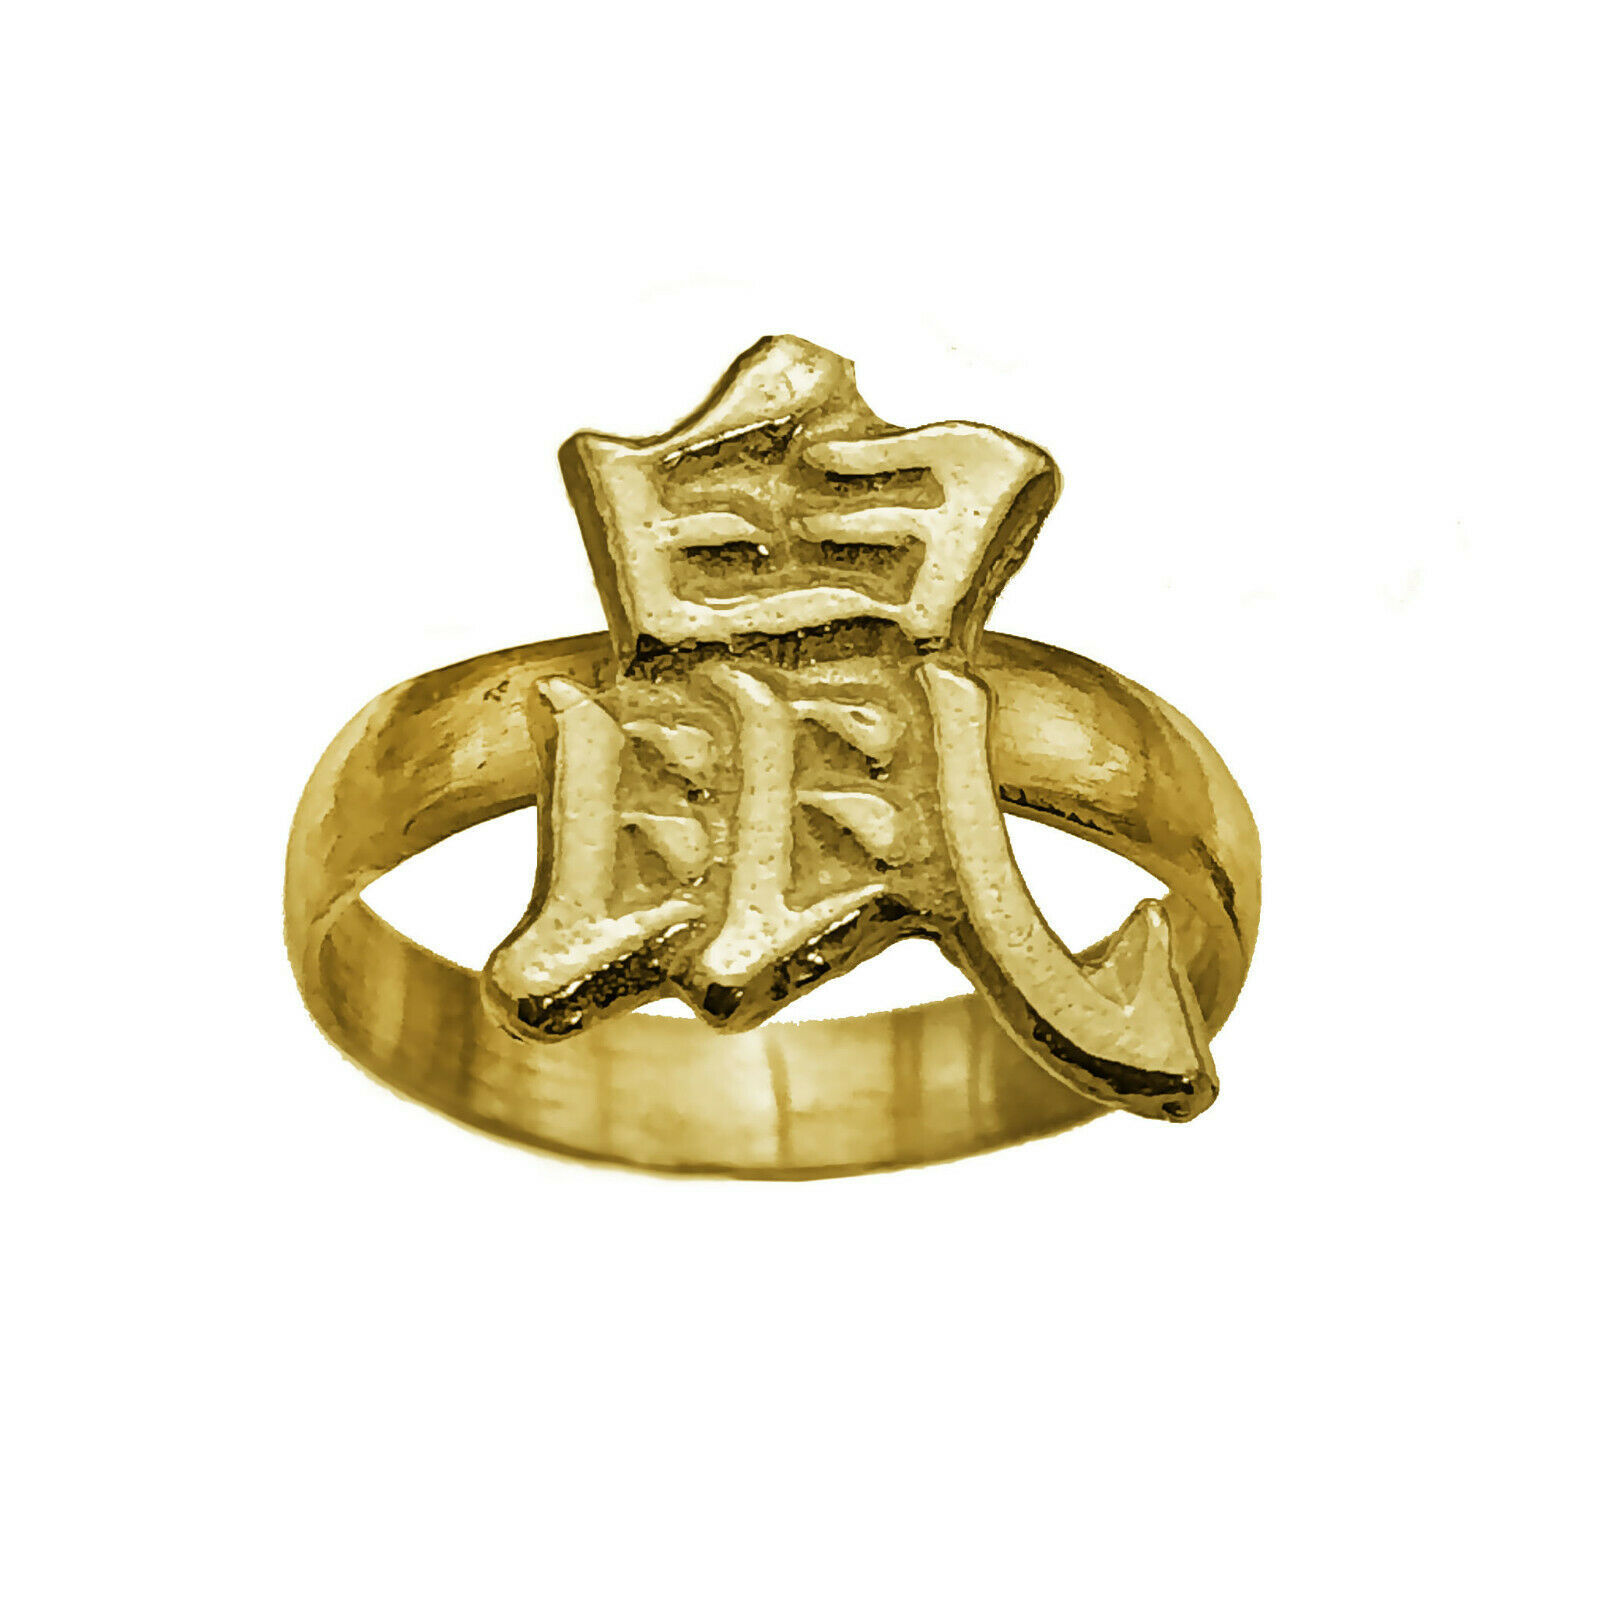 Chinese Year of the Rat symbol 2020 Zodiac SAGITTARIUS 24k Gold Plated Ring